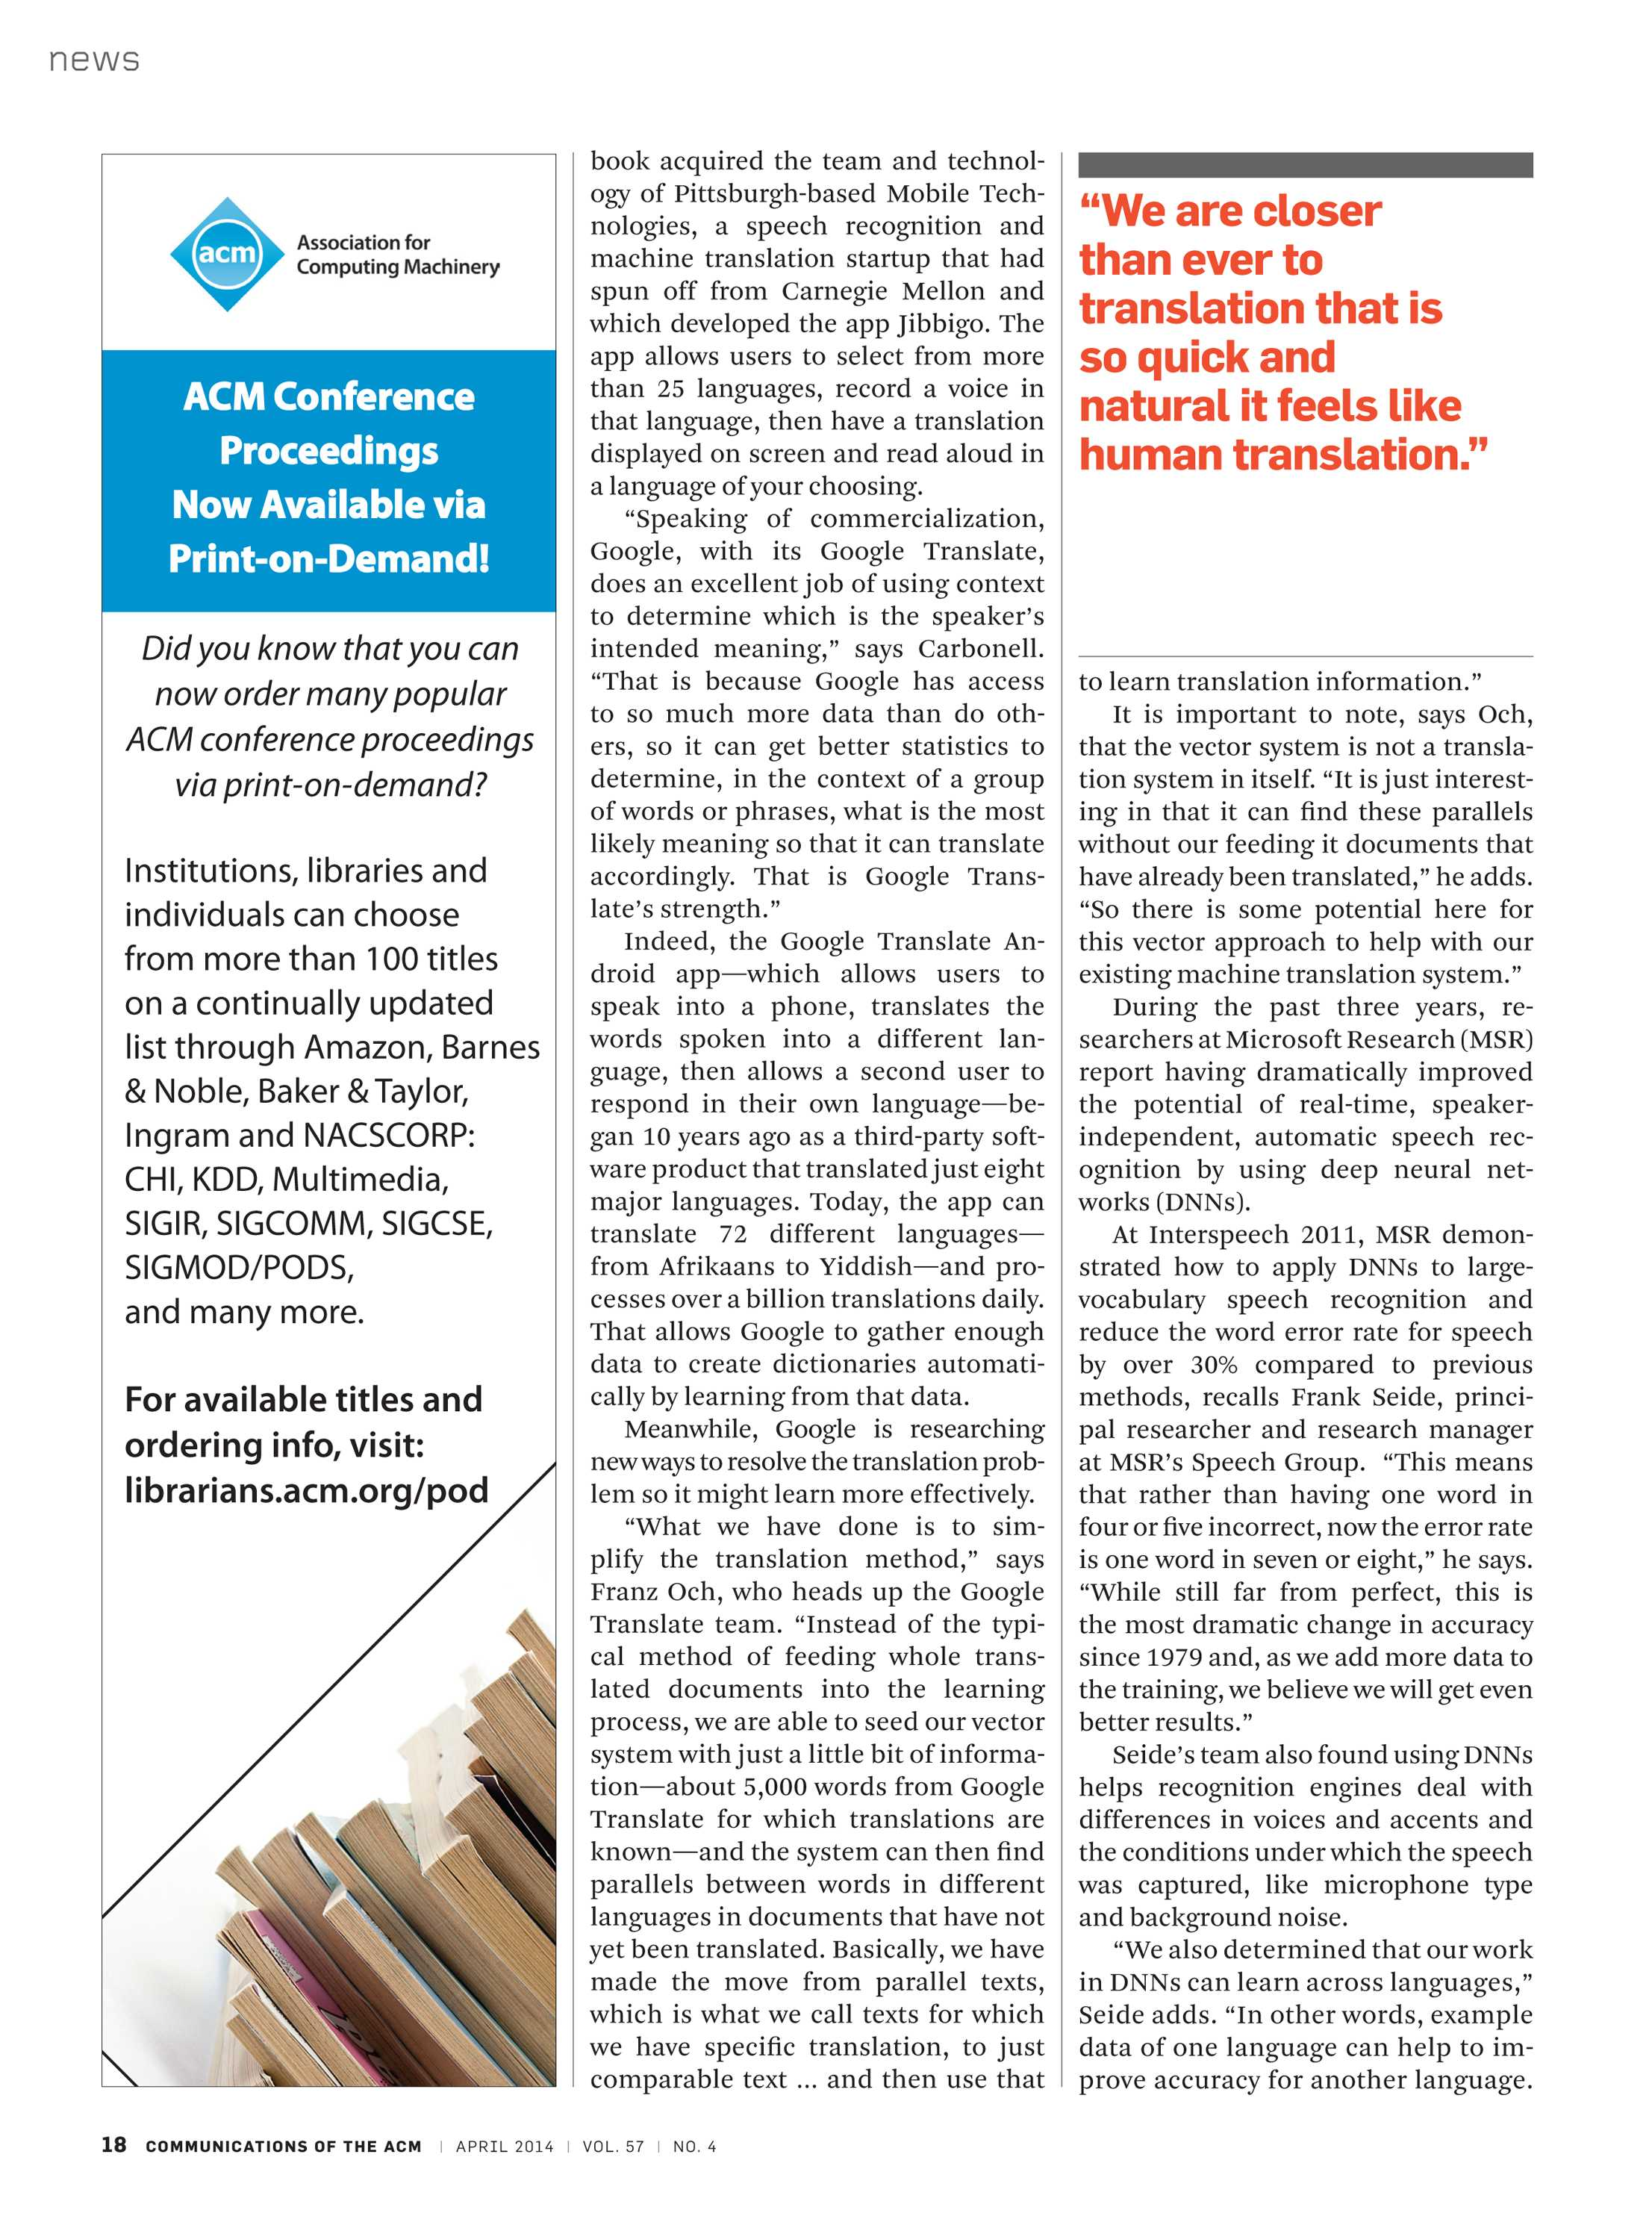 Communications of the ACM - April 2014 - page 18